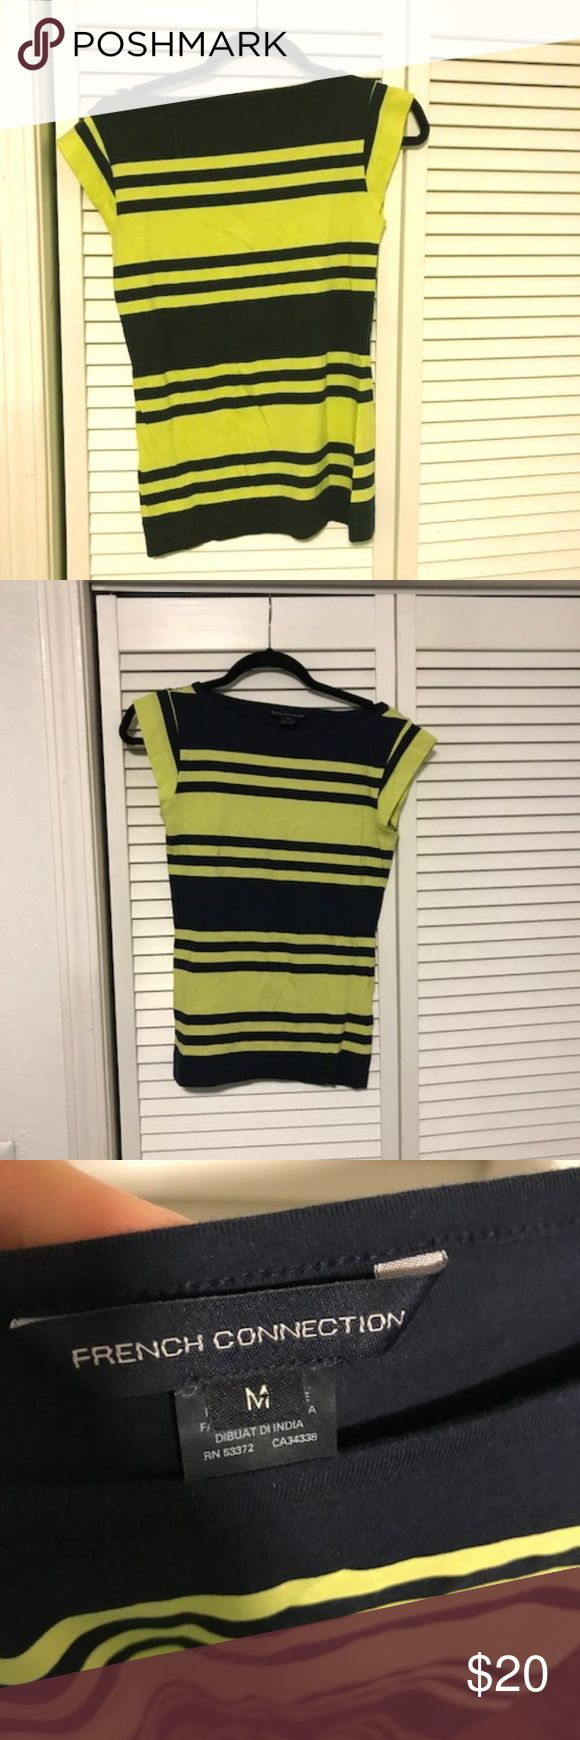 Yellow and Navy womens French Connection Tshirt NWOT, never worn, from a non-smoking home. French Connection Tops Tees - Short Sleeve